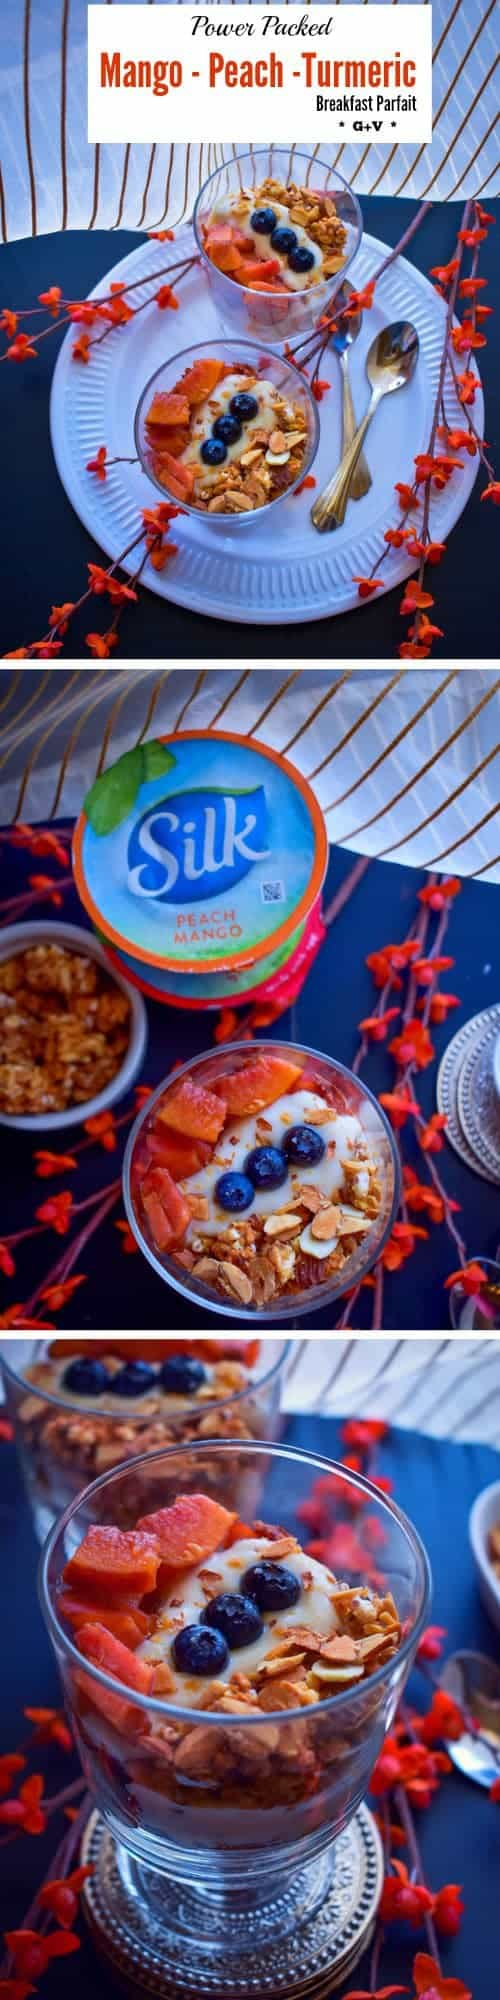 Power Packed Mango-Peach-Turmeric Breakfast Parfait: #DairyFreeGoodness #CollectiveBias #ad @lovemysilk